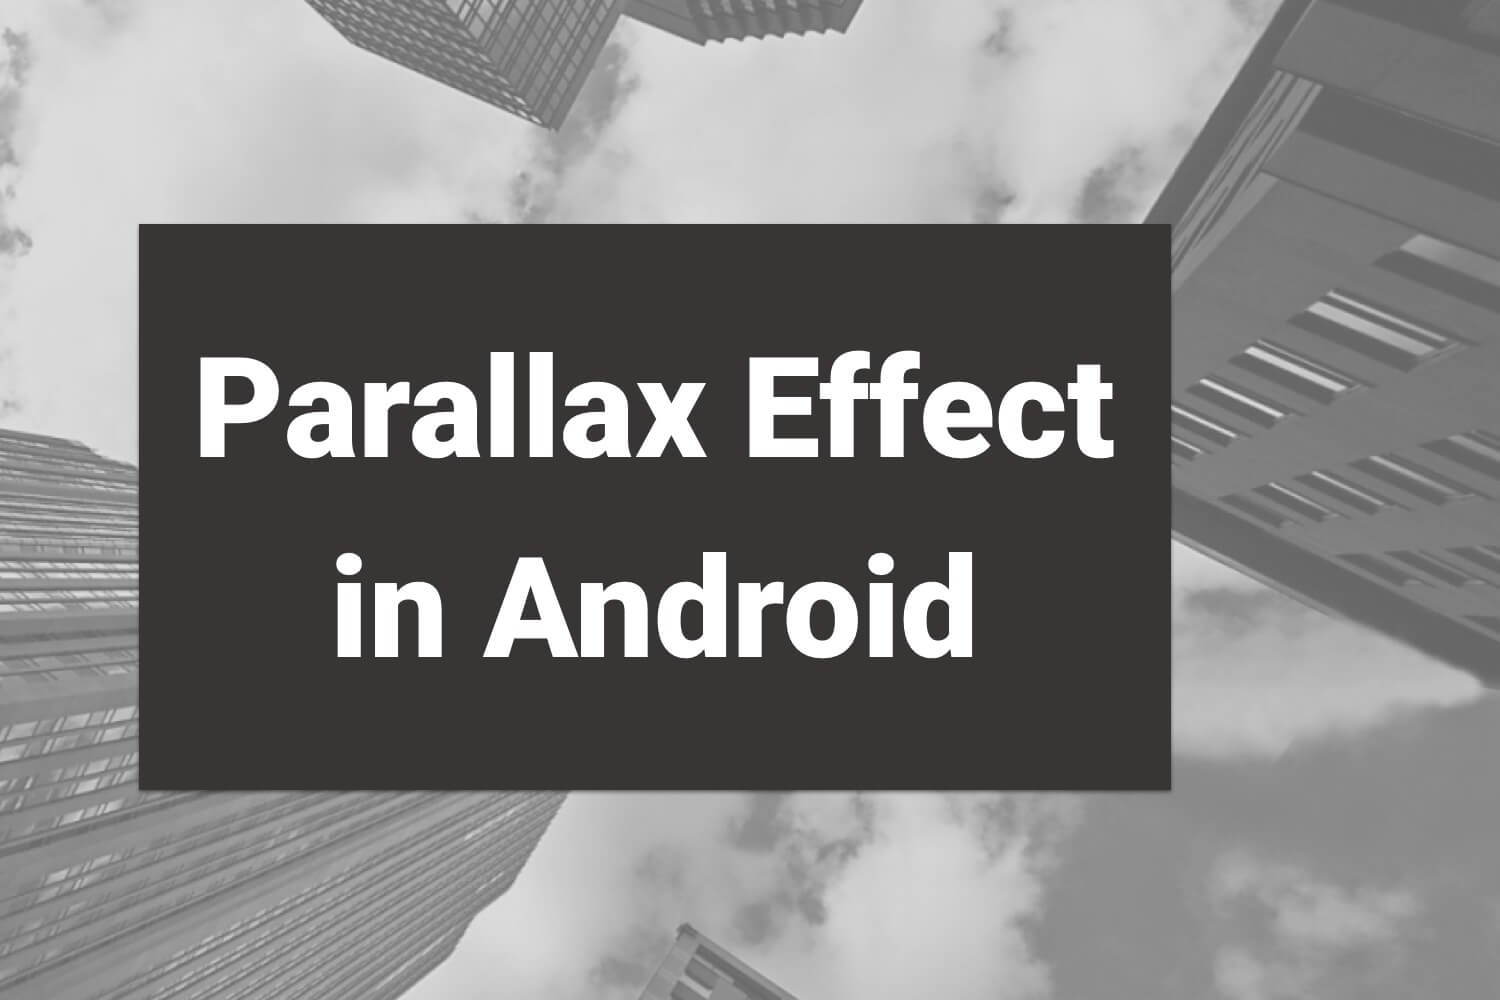 Parallax Effect in Android